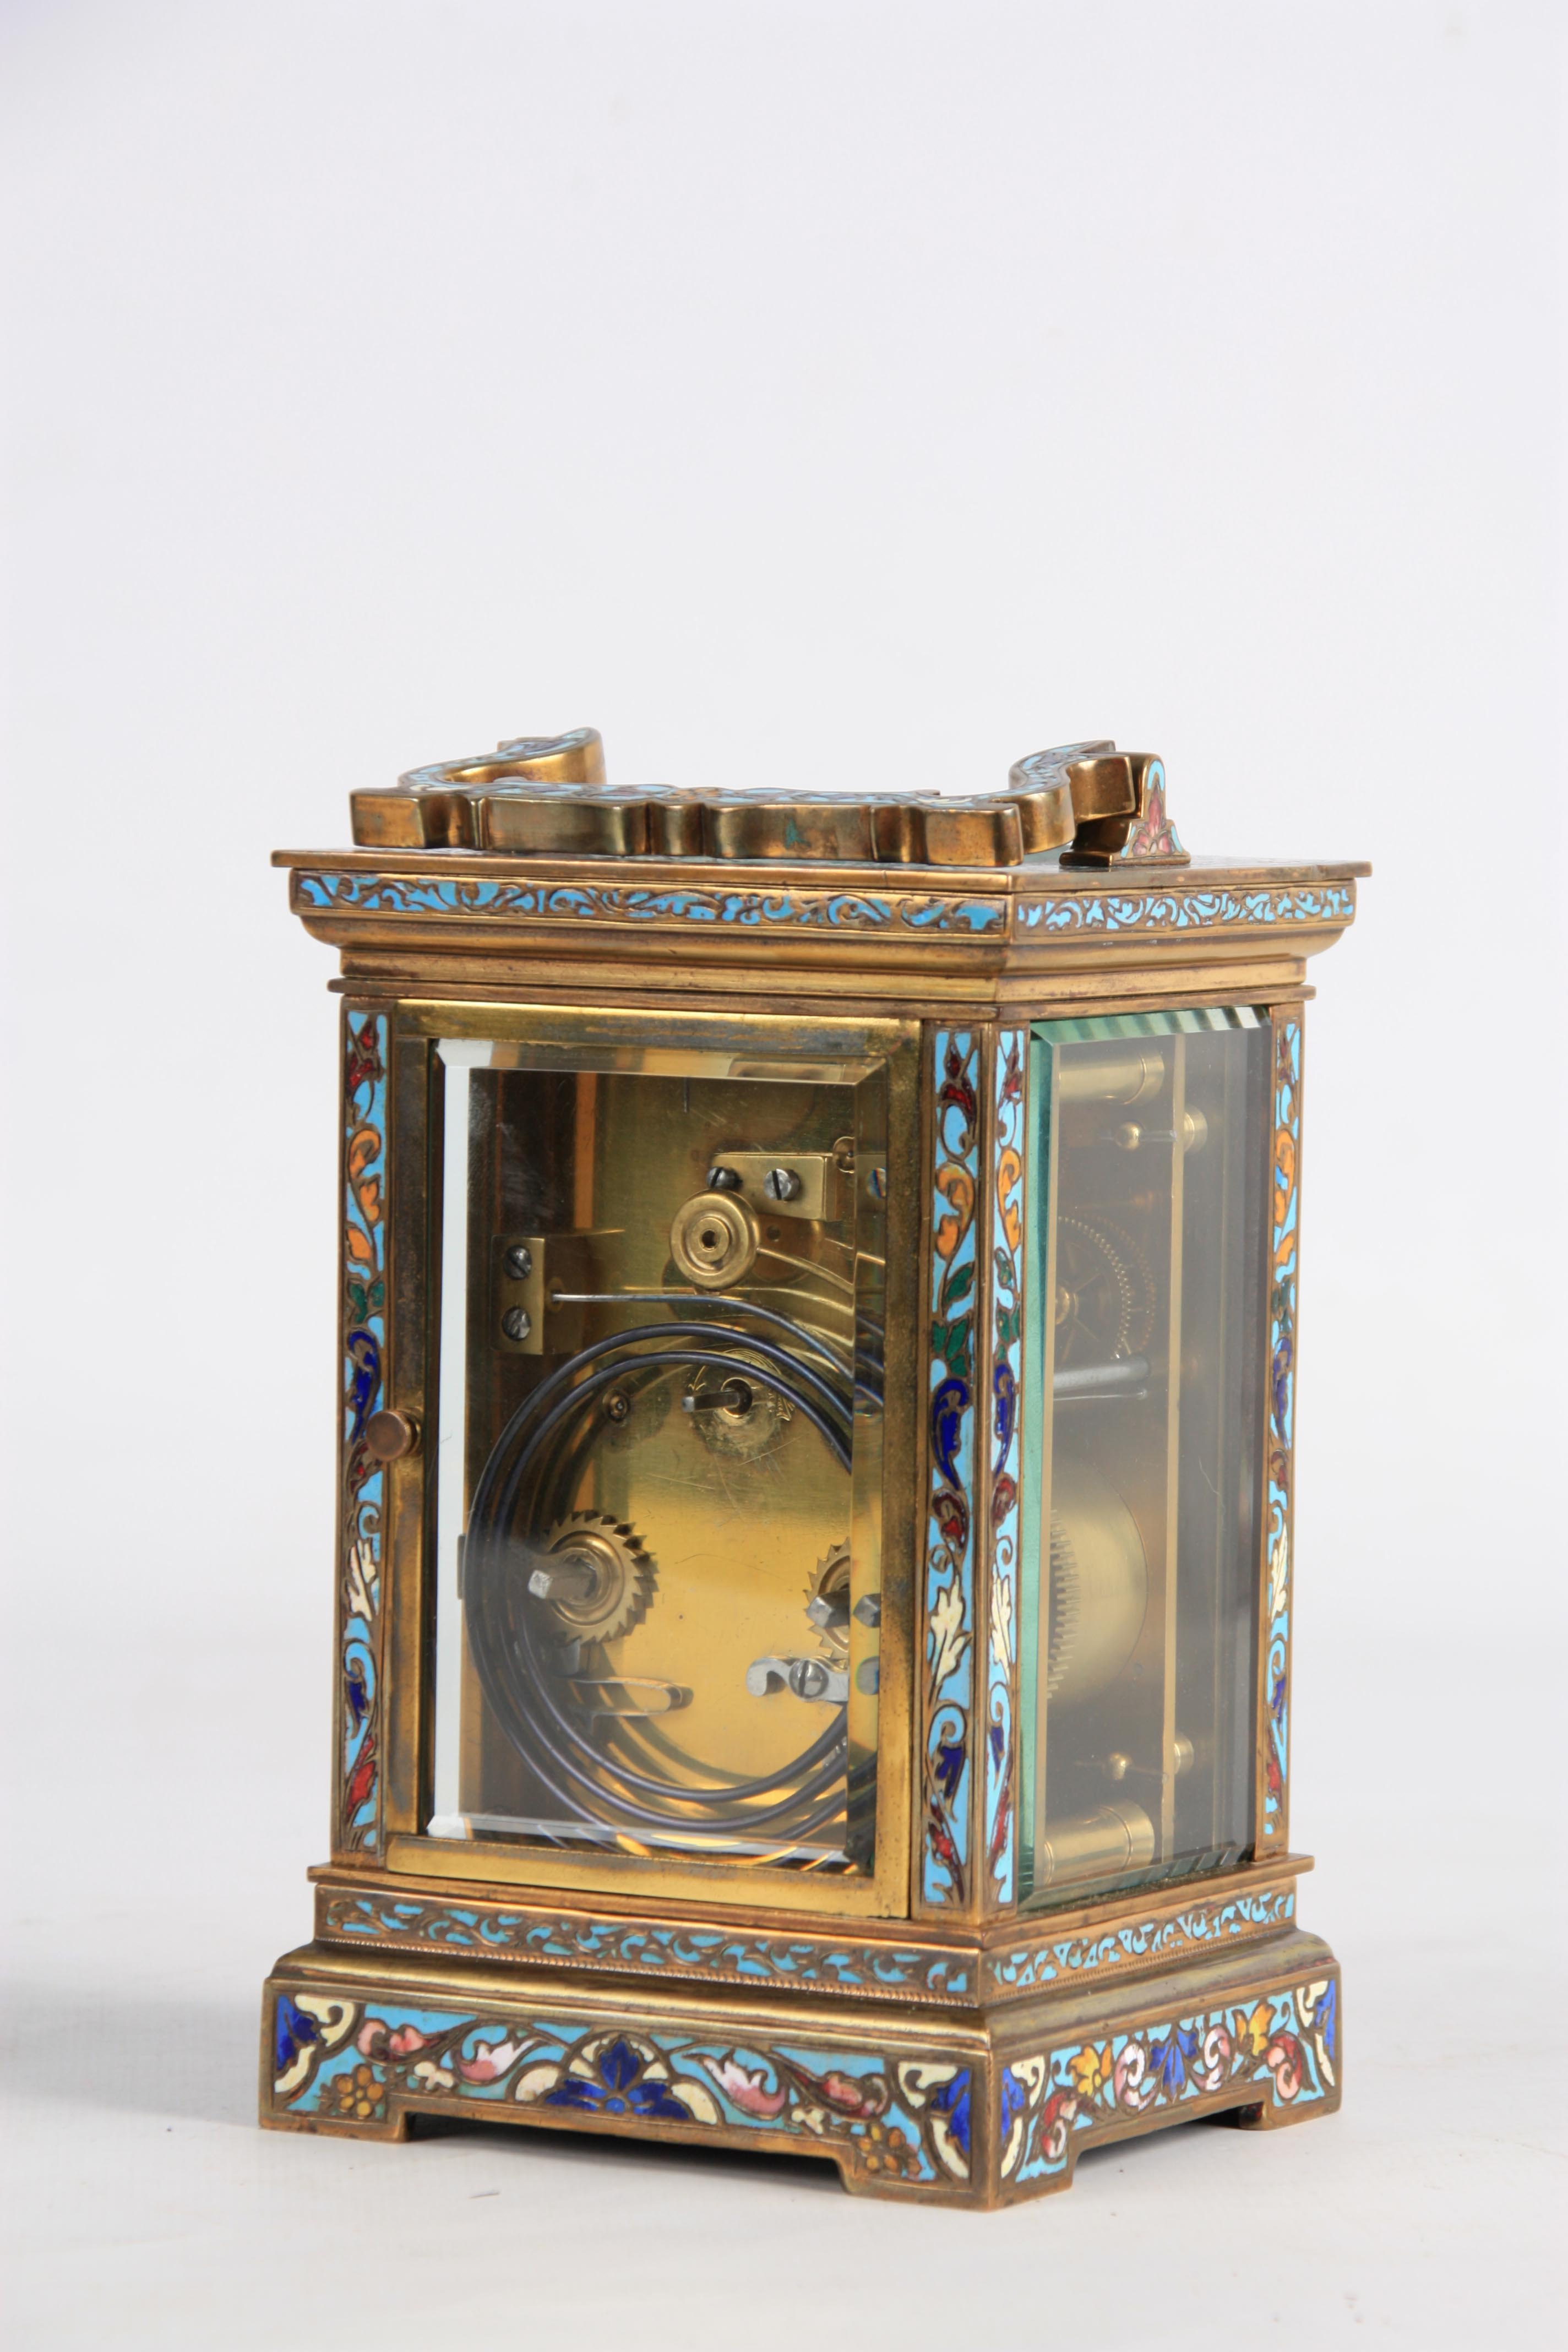 A LATE 19TH CENTURY FRENCH CHAMPLEVE ENAMEL STRIKING CARRIAGE CLOCK the case covered in champleve - Image 4 of 6